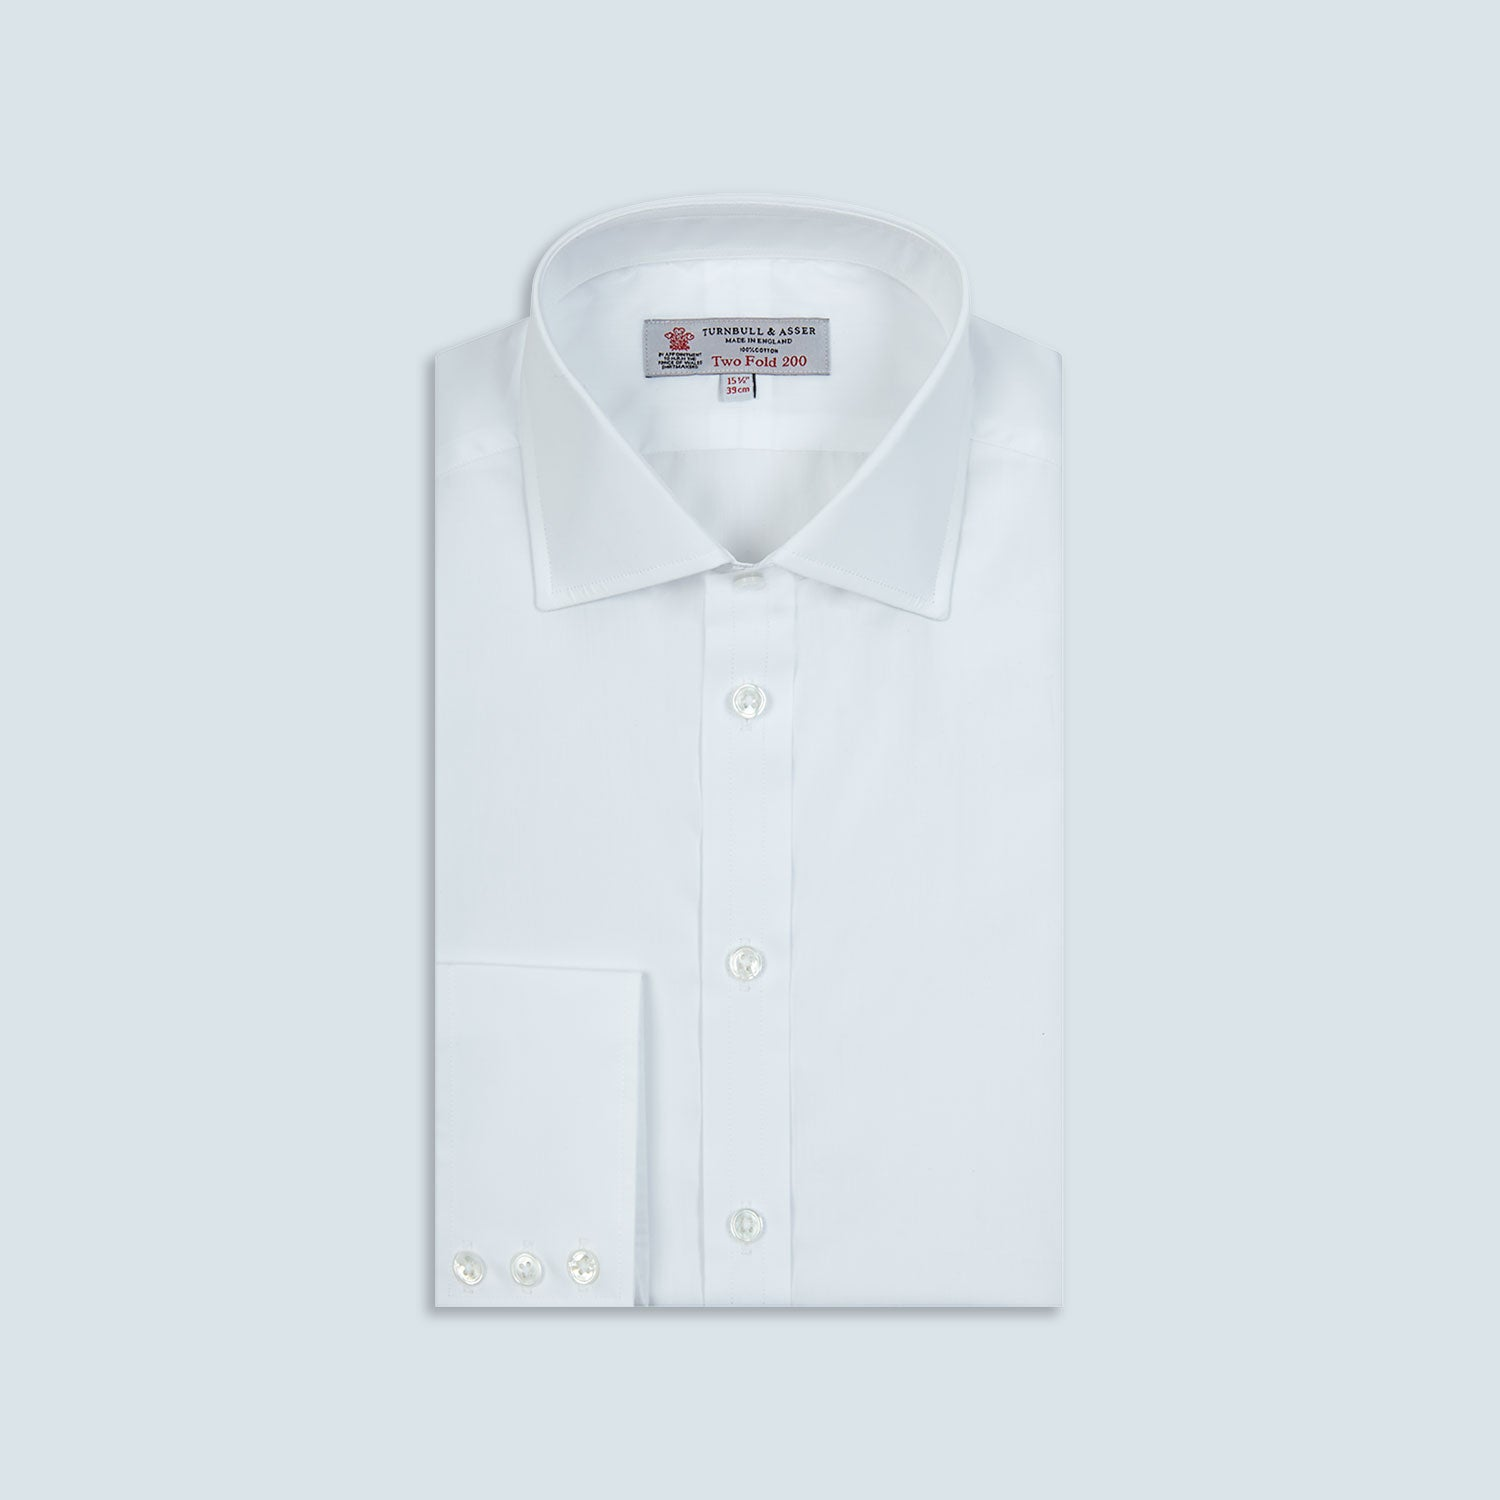 Two-Fold 200 White Cotton Shirt with Regent Collar and 3-Button Cuffs - 15.5 from Turnbull & Asser